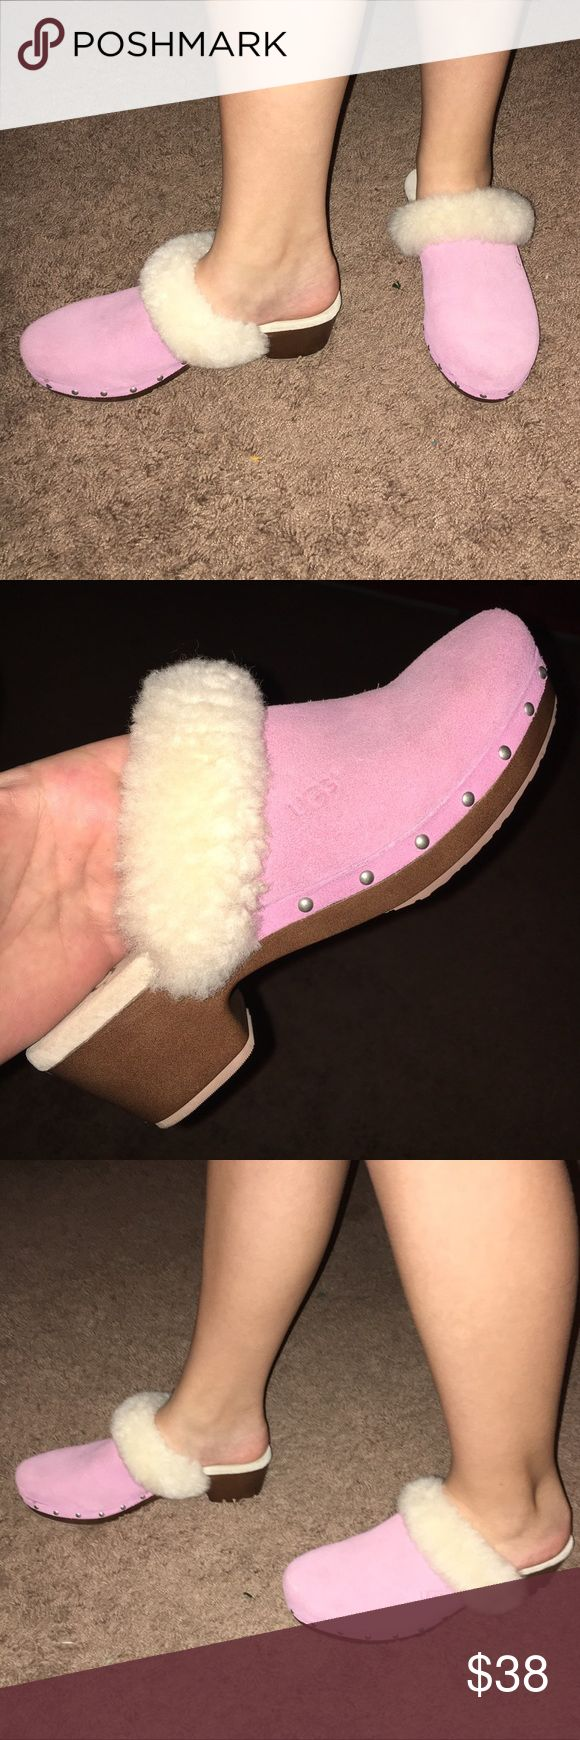 Ugg Girls shoes 👠 AUTHENTIC. SIZE 4. NWT ADORABLE...One of a kind !!!   These are Brand NEW!!  Never worn 👍.  Your little Girl will LOVE ❤️ these shoes for sure ✅💕👠. Great Price !!!   May consider offers.  😀💜 UGG Shoes Dress Shoes